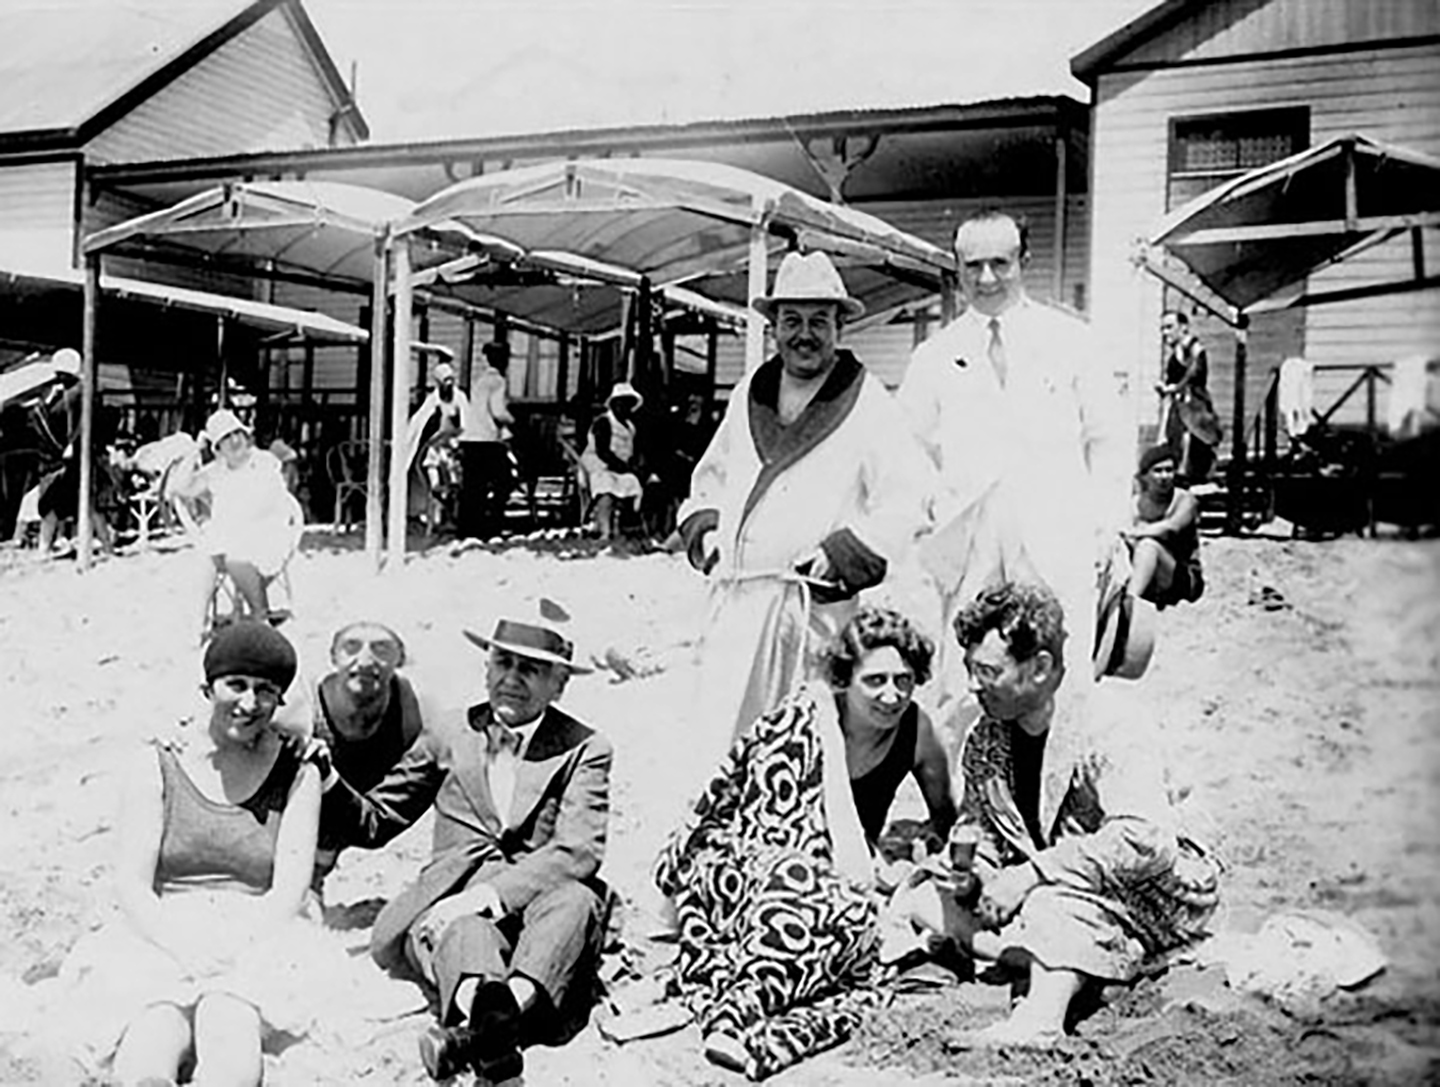 a group of men and women pose on a beach in the 1930s